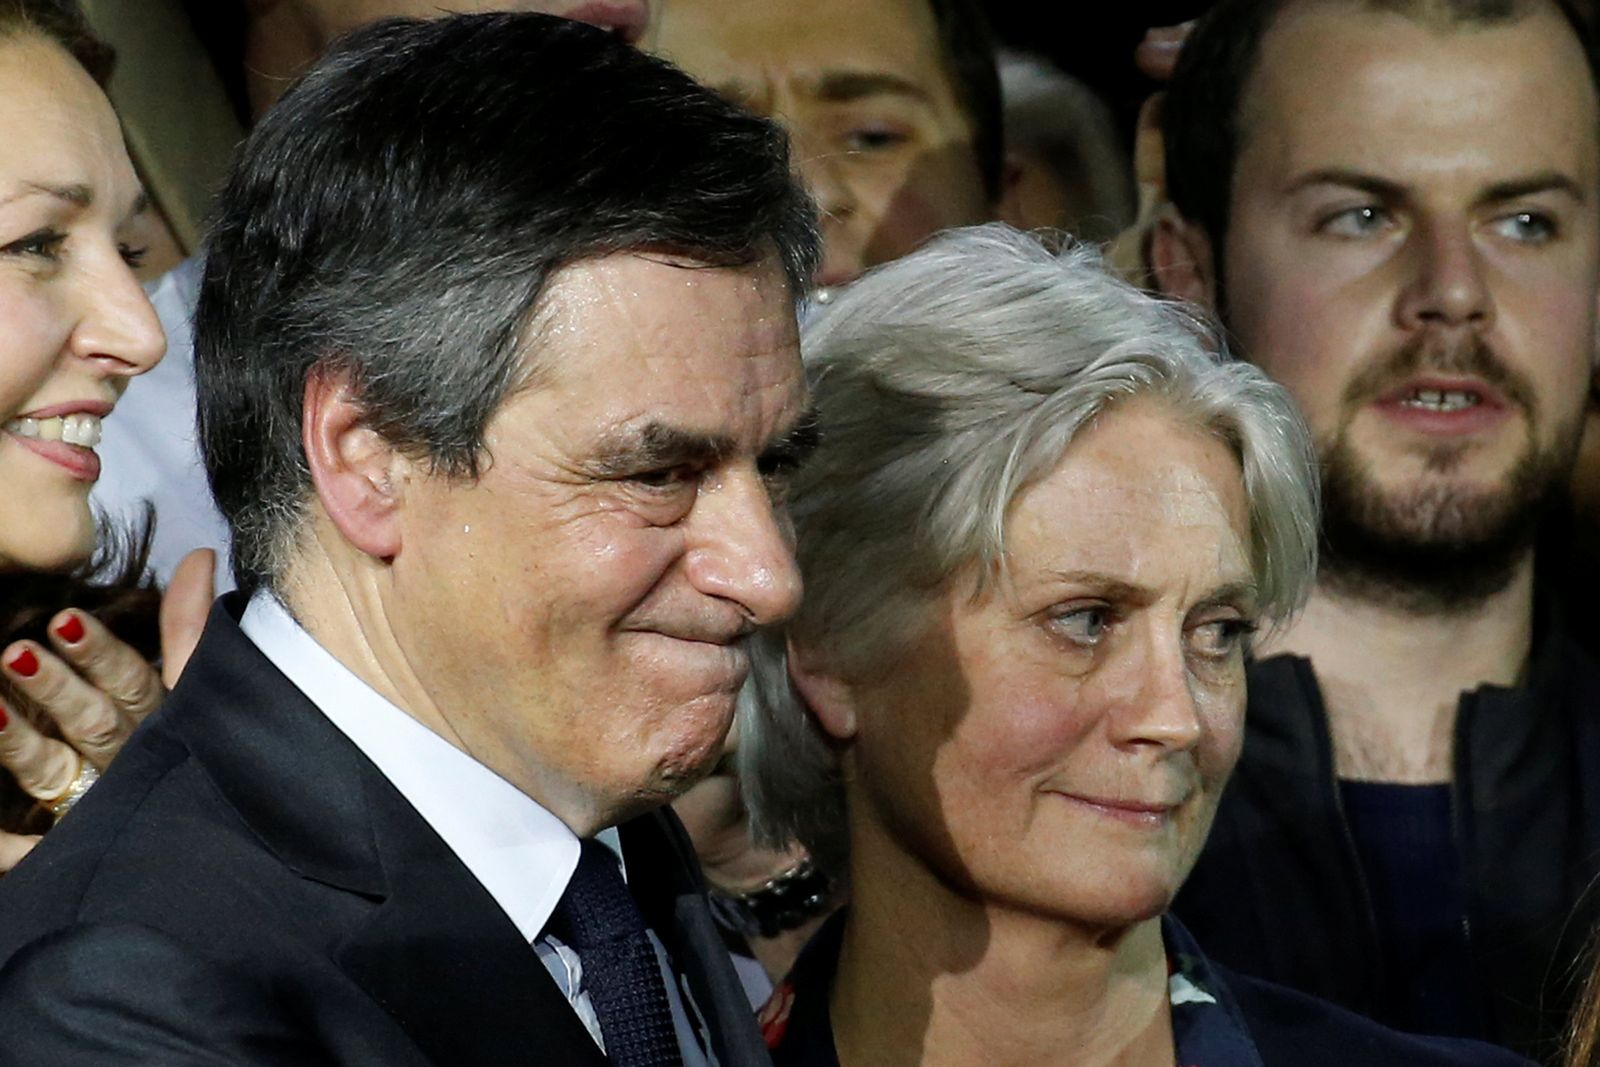 FRANCE-ELECTION/INQUIRY